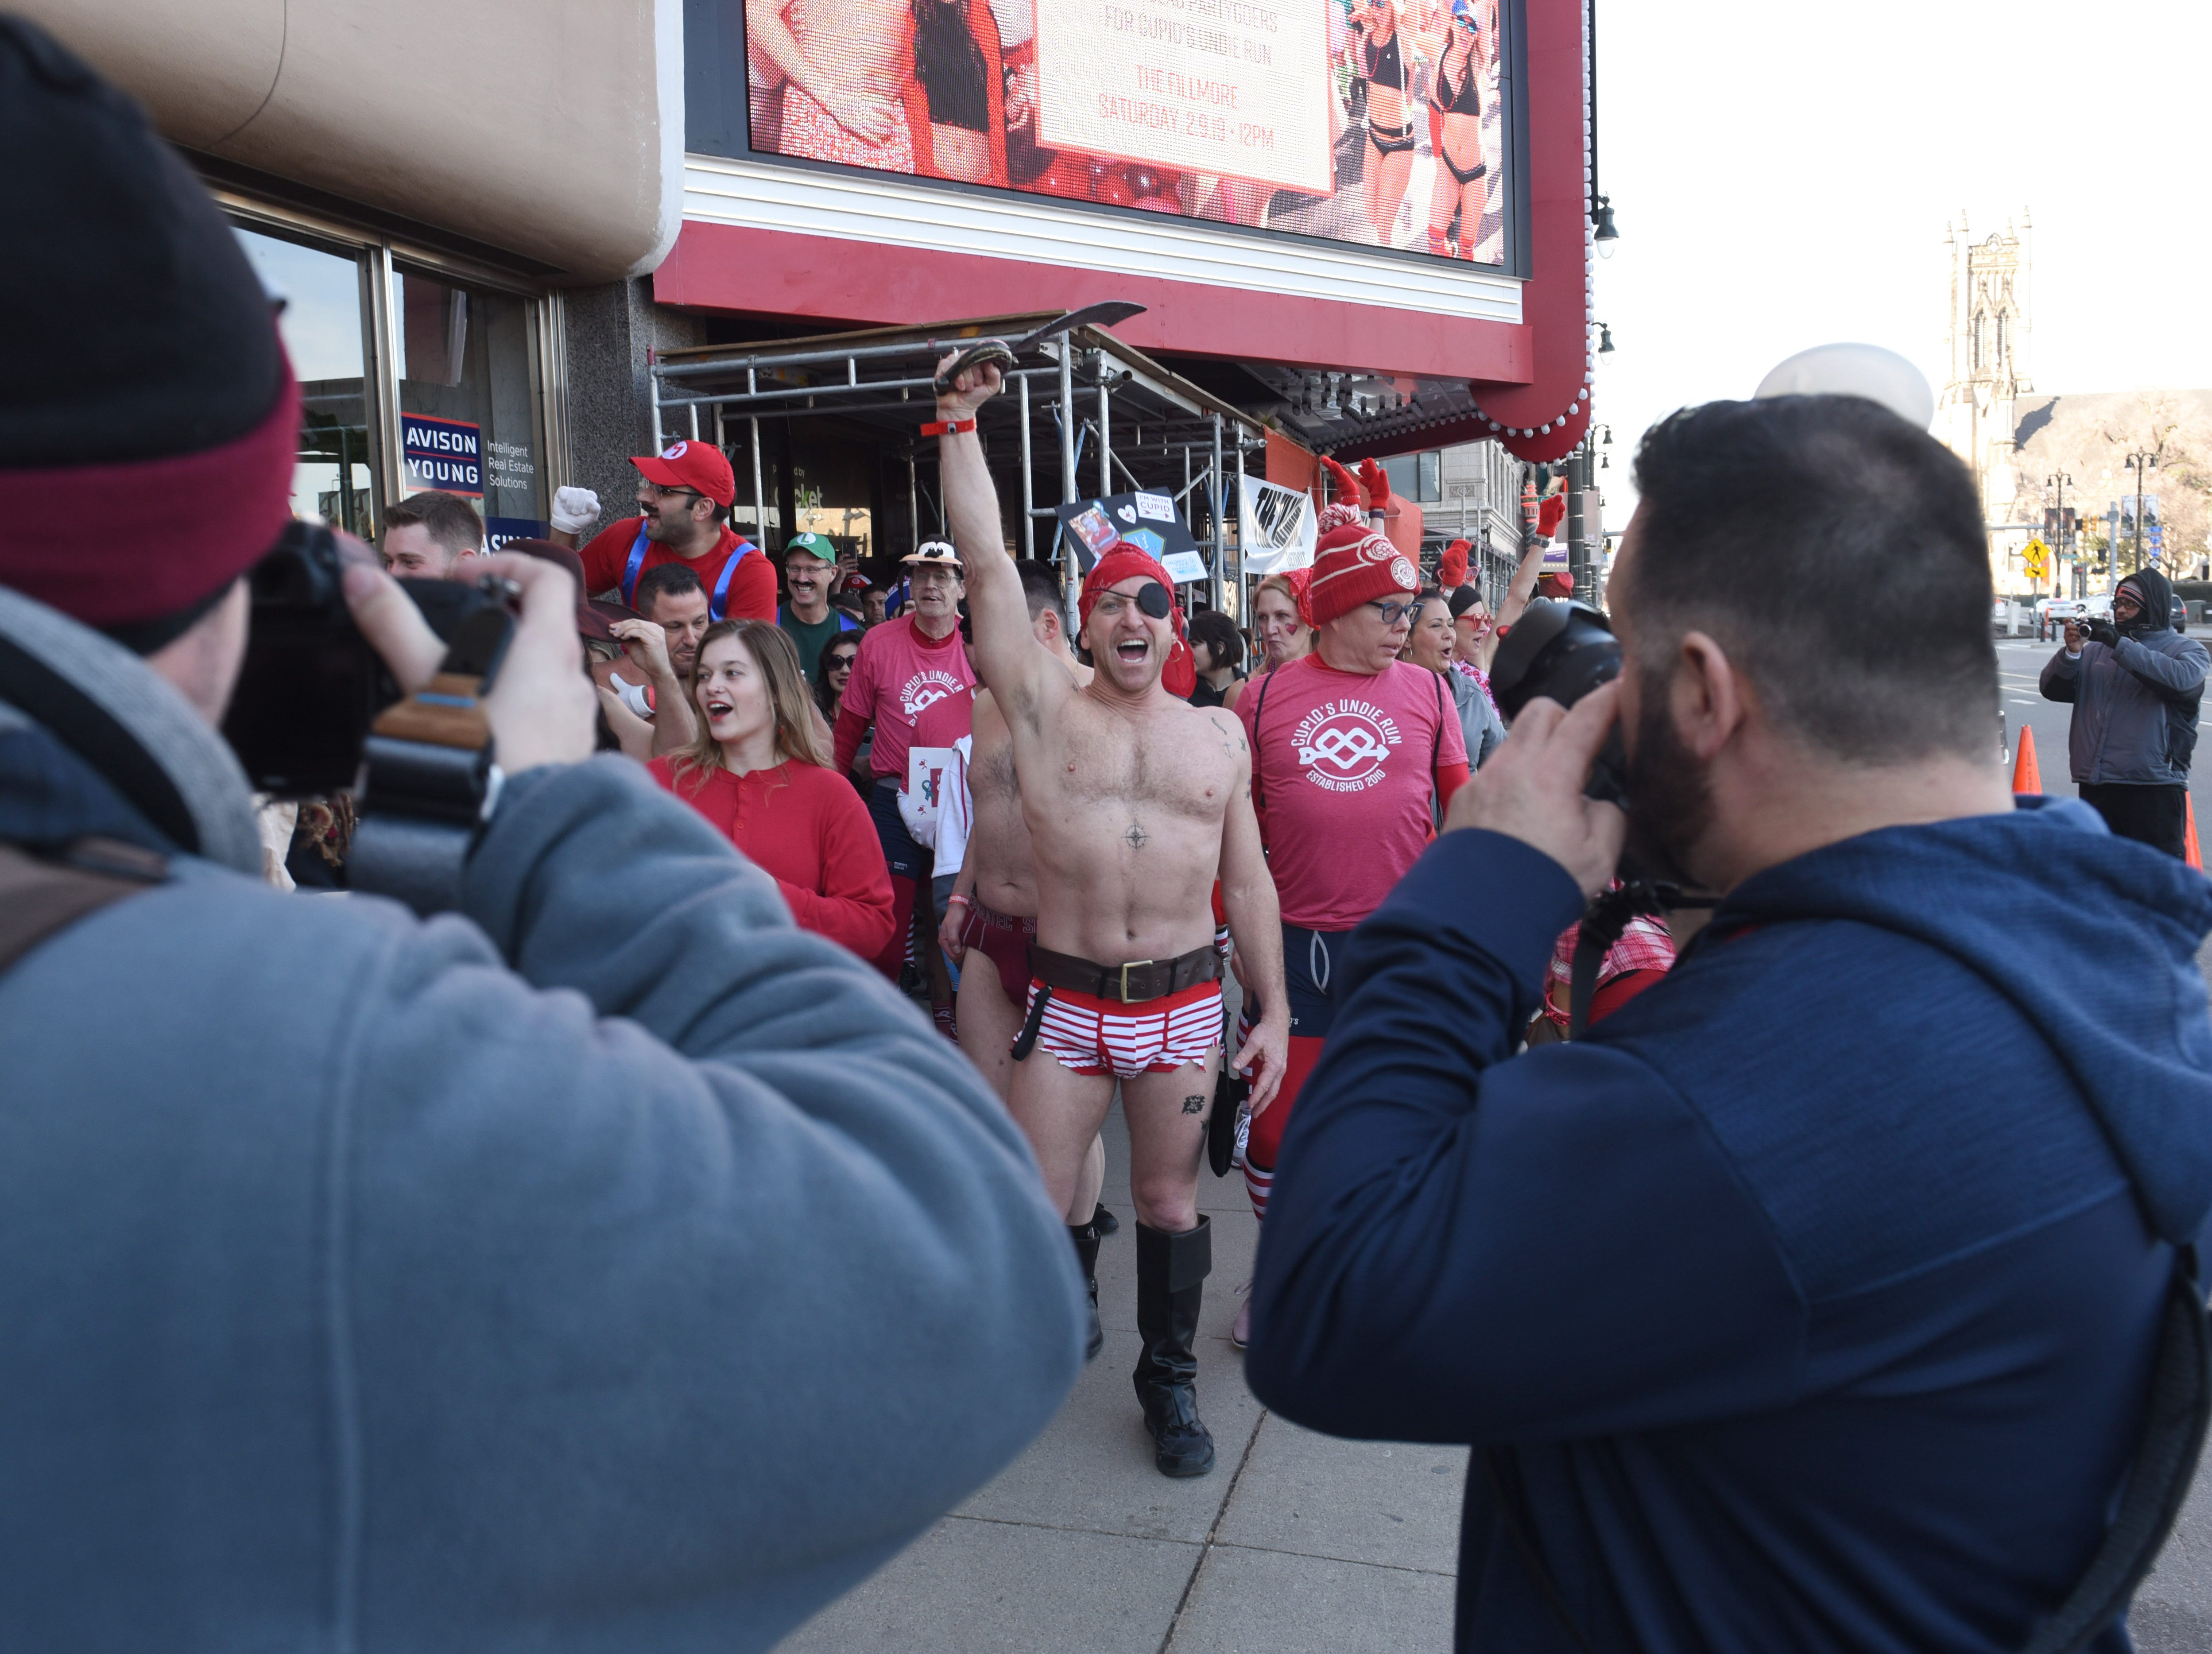 Participants shout and cheer outside The Fillmore Detroit for Cupid's Undie Run.